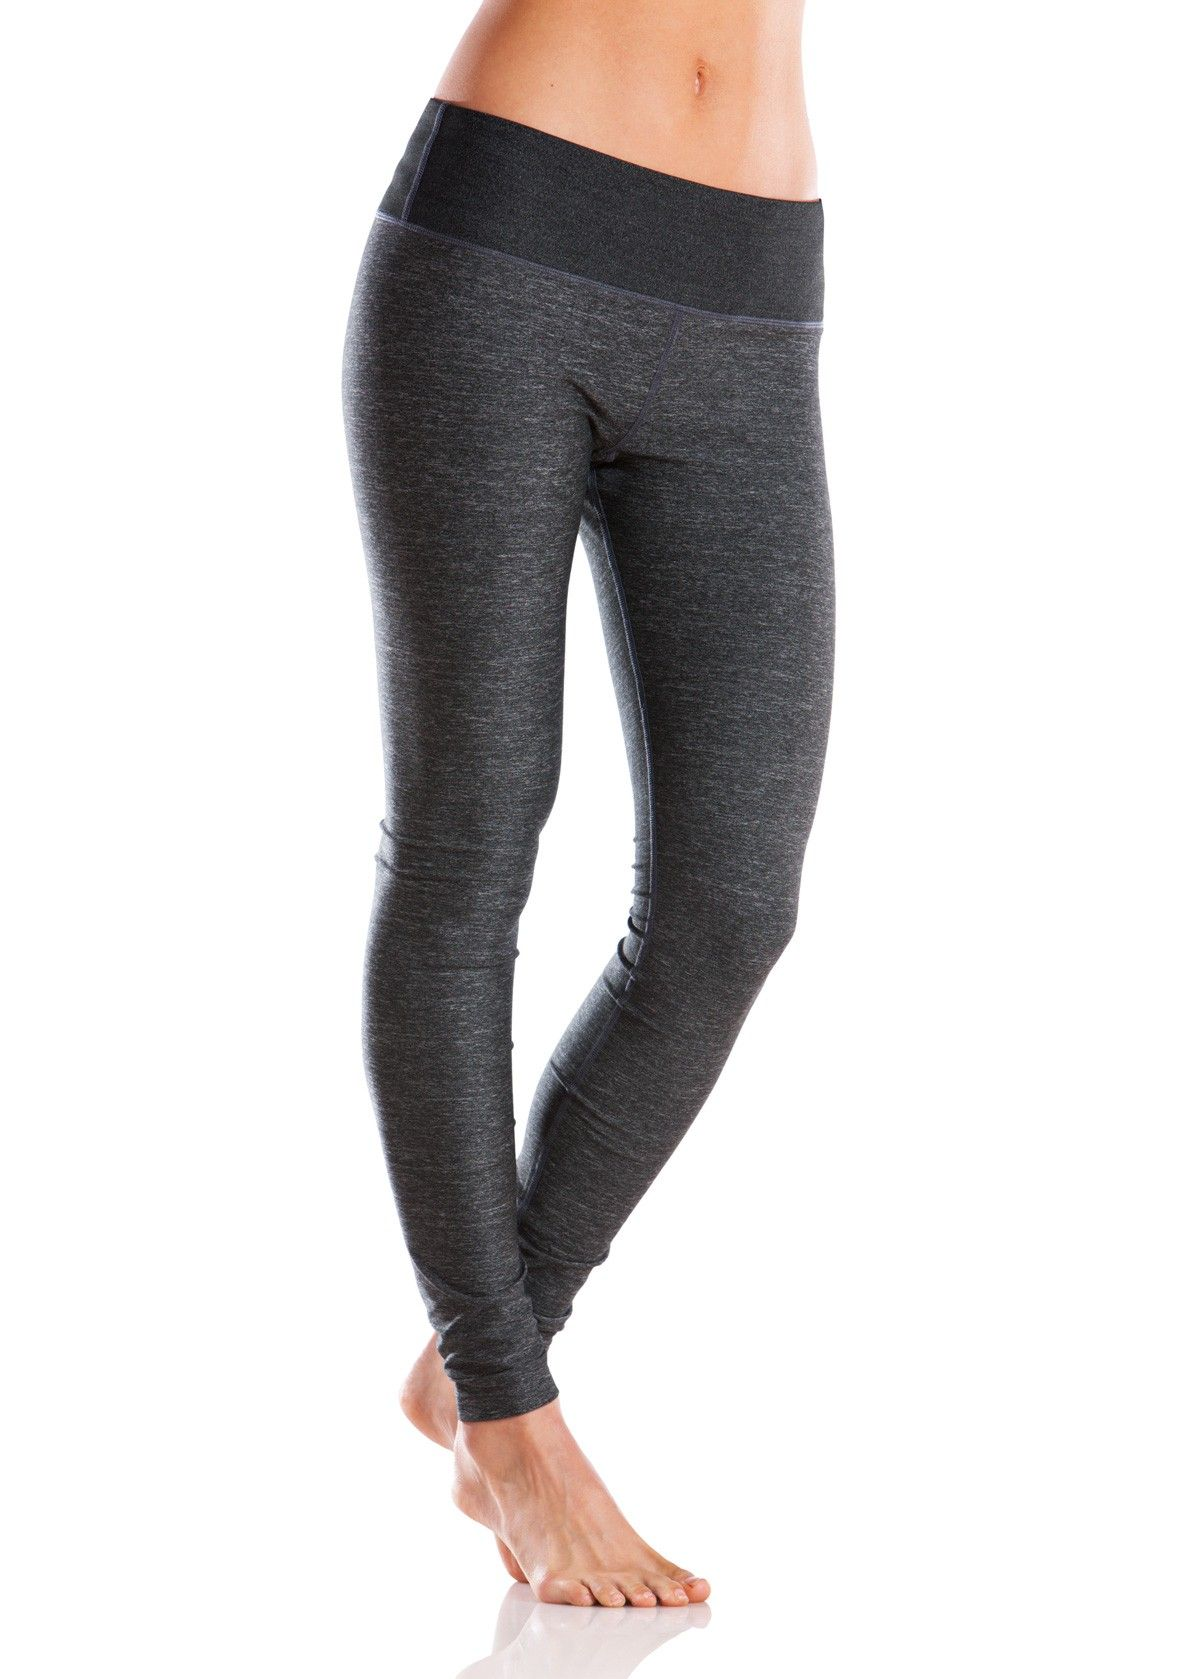 Moving Comfort Urban Gym Tight Stocking XS XL Also